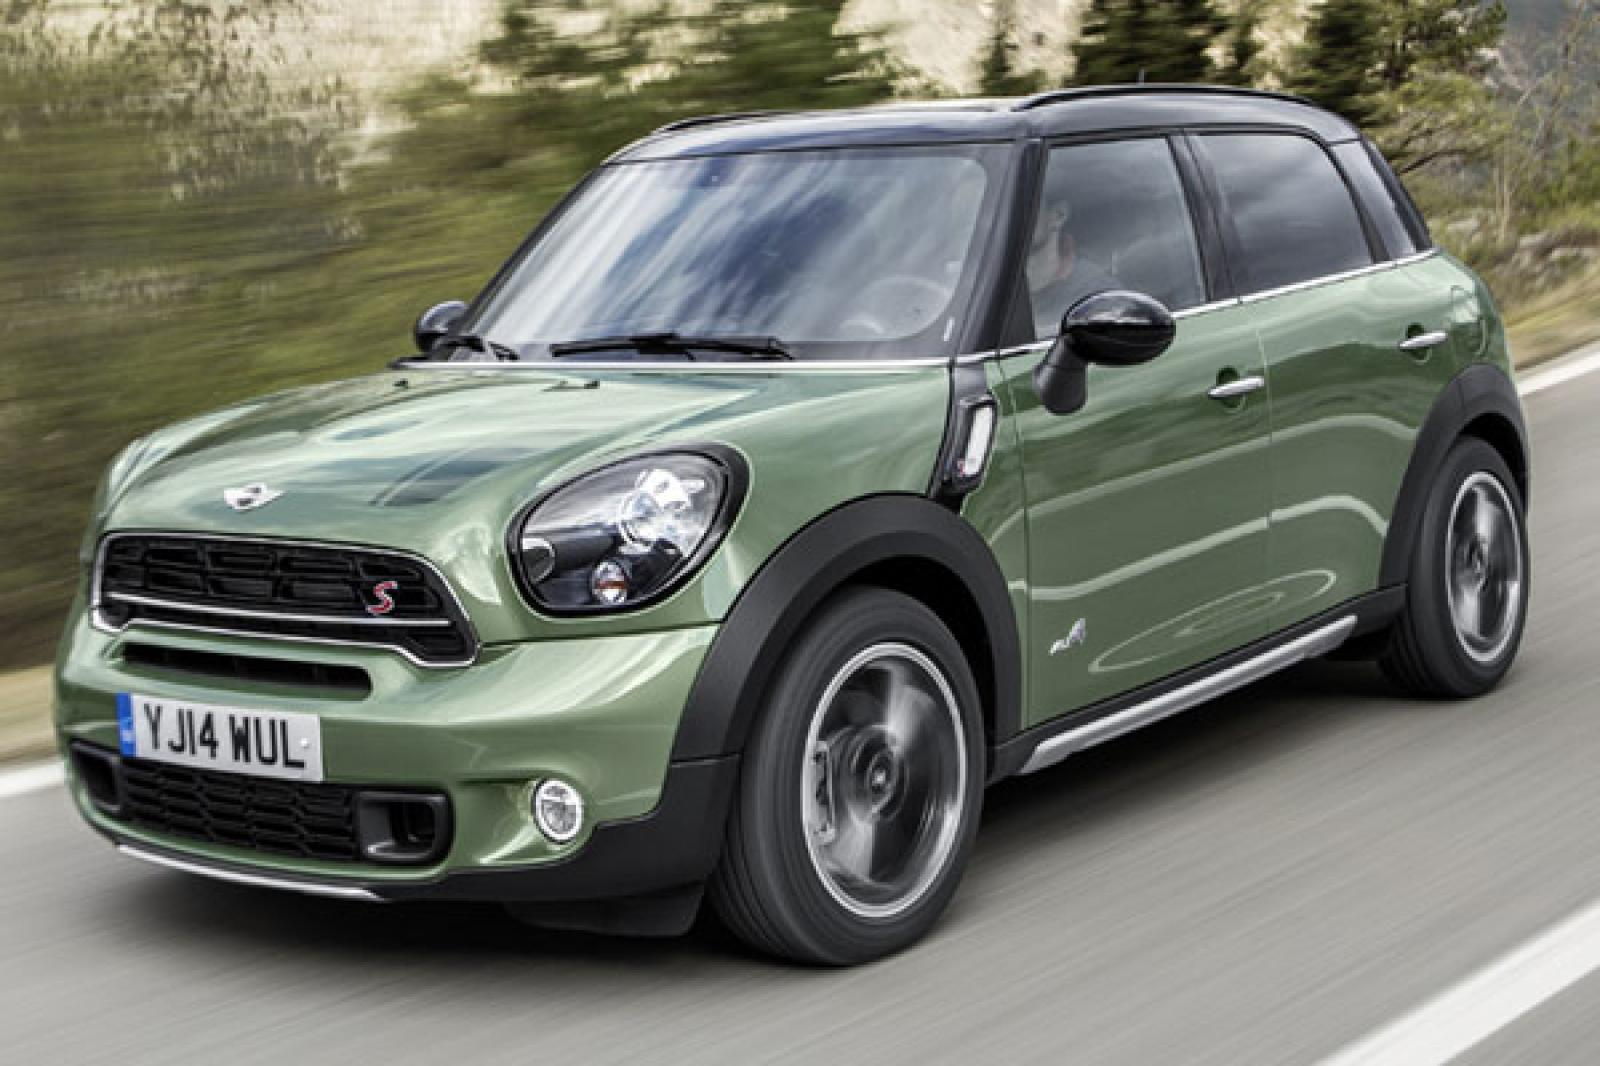 2015 mini cooper countryman information and photos zombiedrive. Black Bedroom Furniture Sets. Home Design Ideas